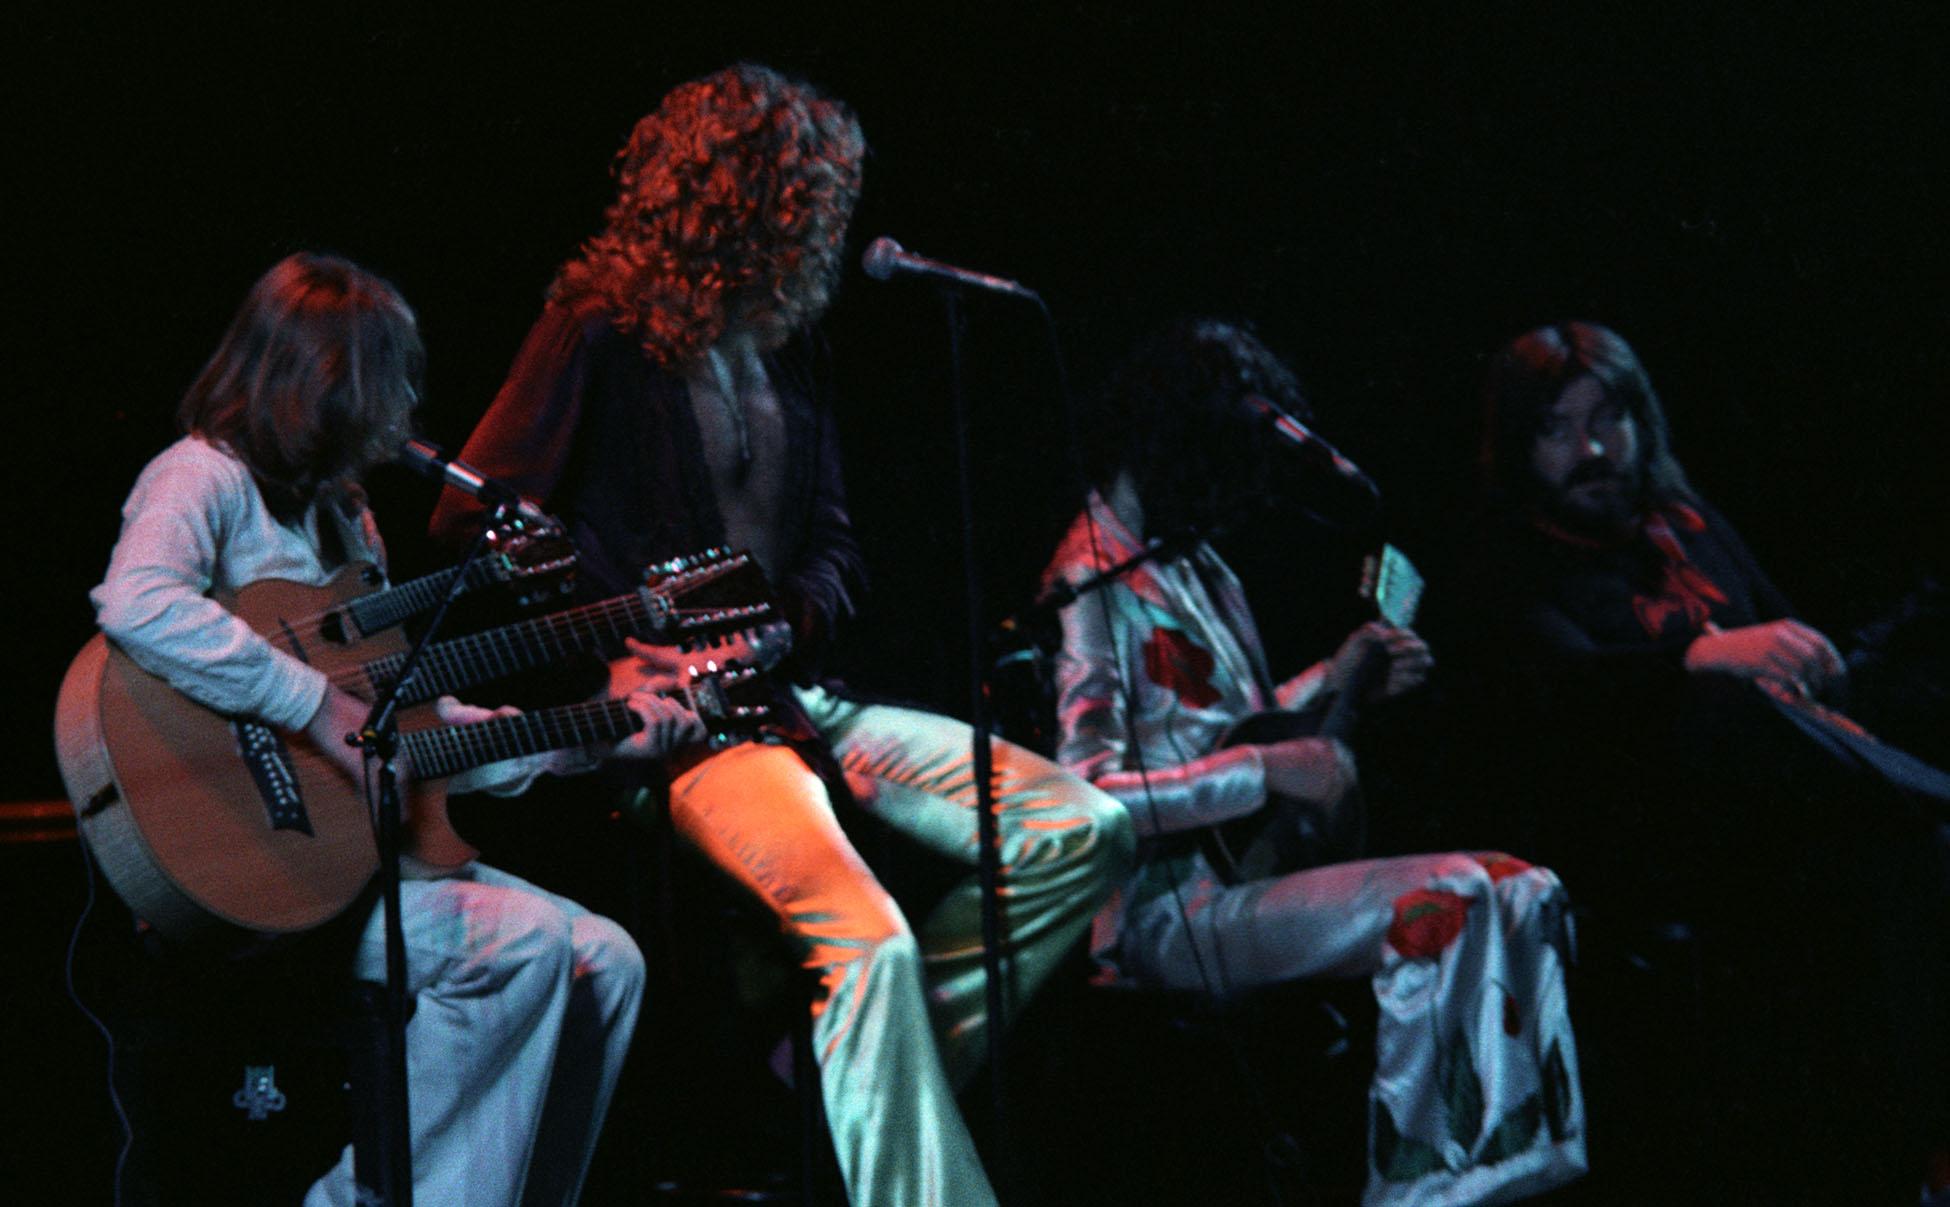 led zeppelin revisited their 40th year anniversary at madison square garden render edge. Black Bedroom Furniture Sets. Home Design Ideas